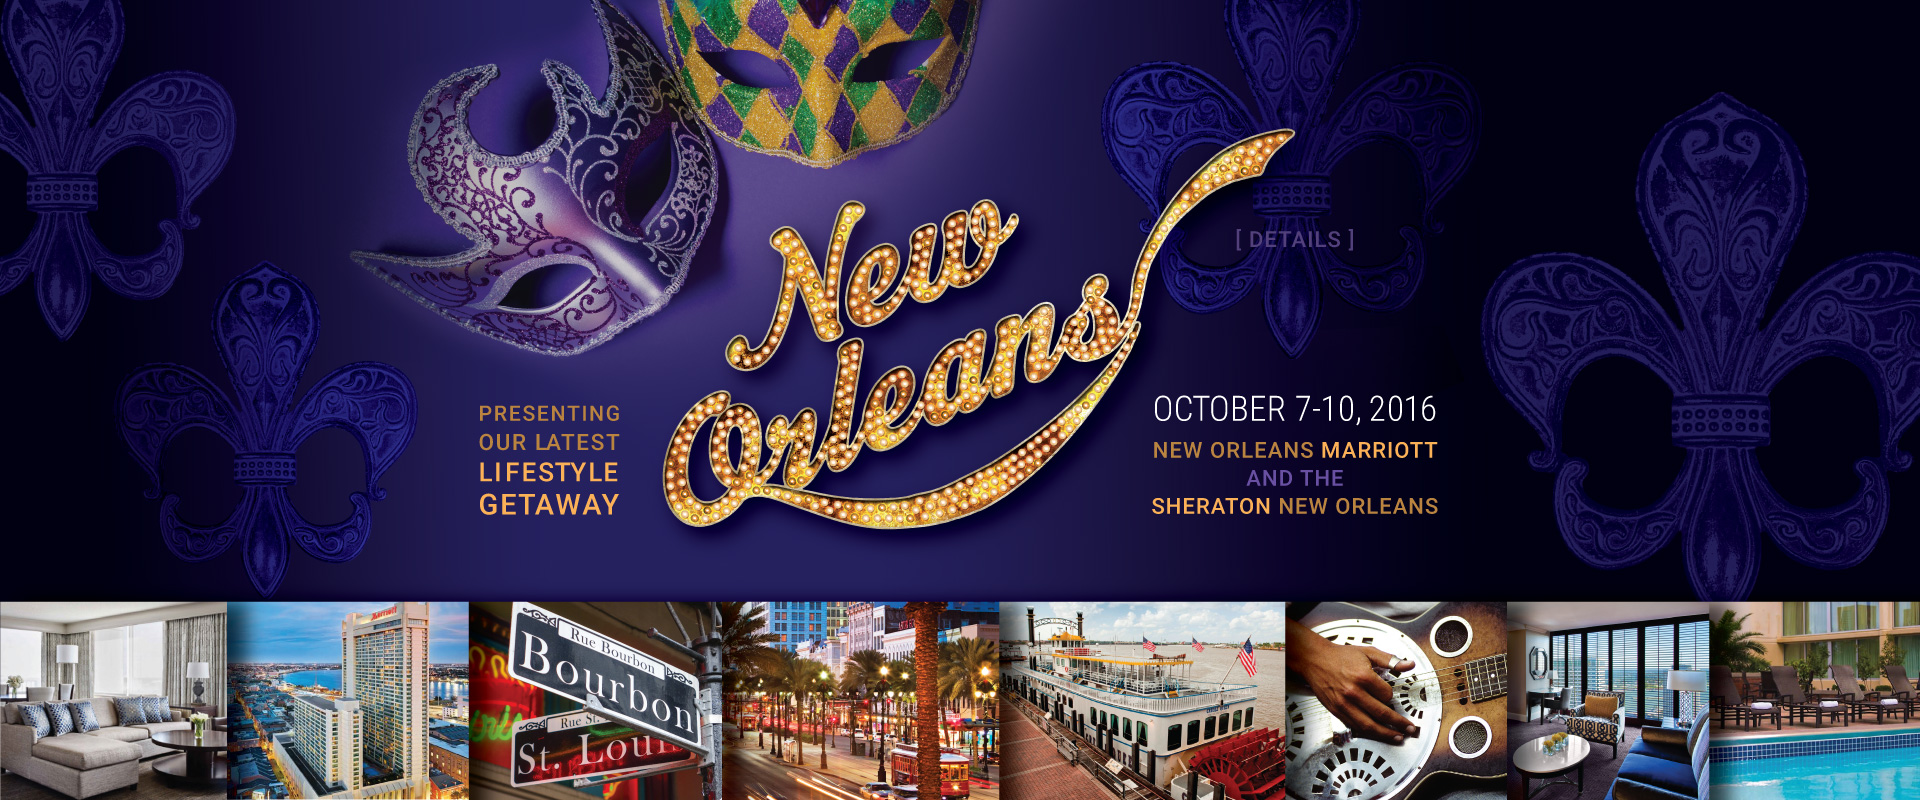 New Orleans Lifestyle Getaway!